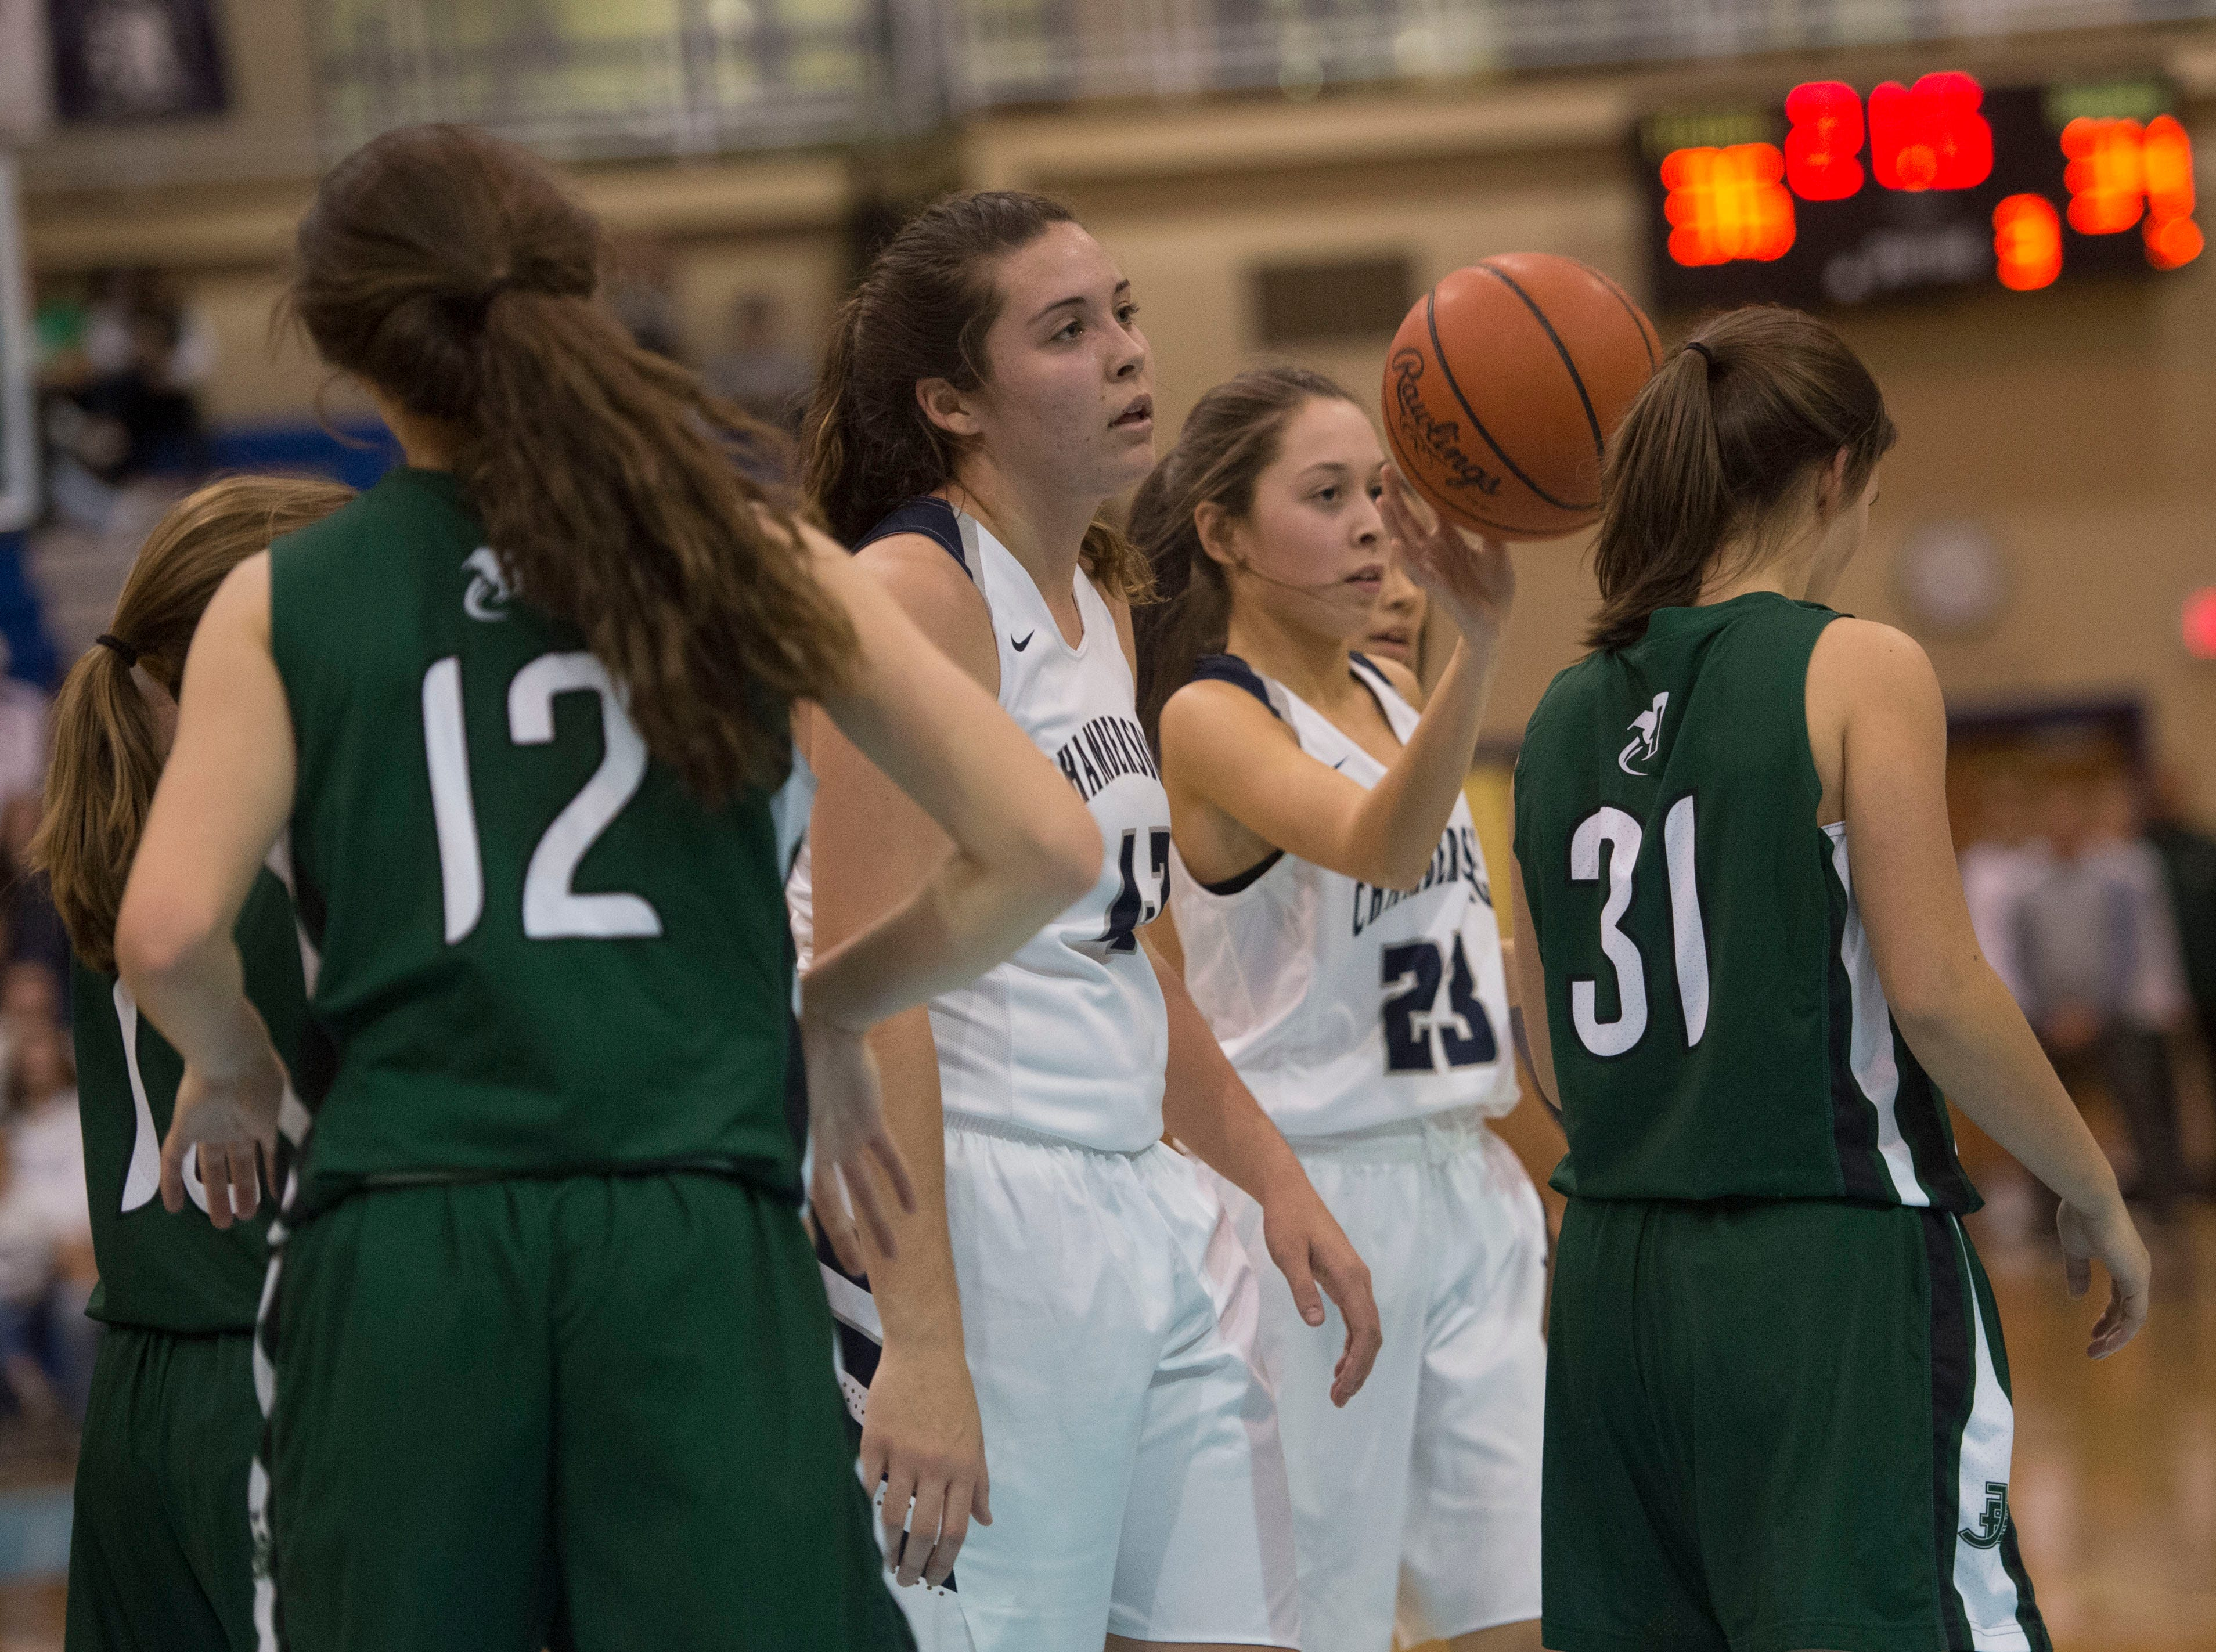 Chambersburg played James Buchanan girls during the Franklin County Tip-Off Tournament, Friday, Dec. 7, 2018.